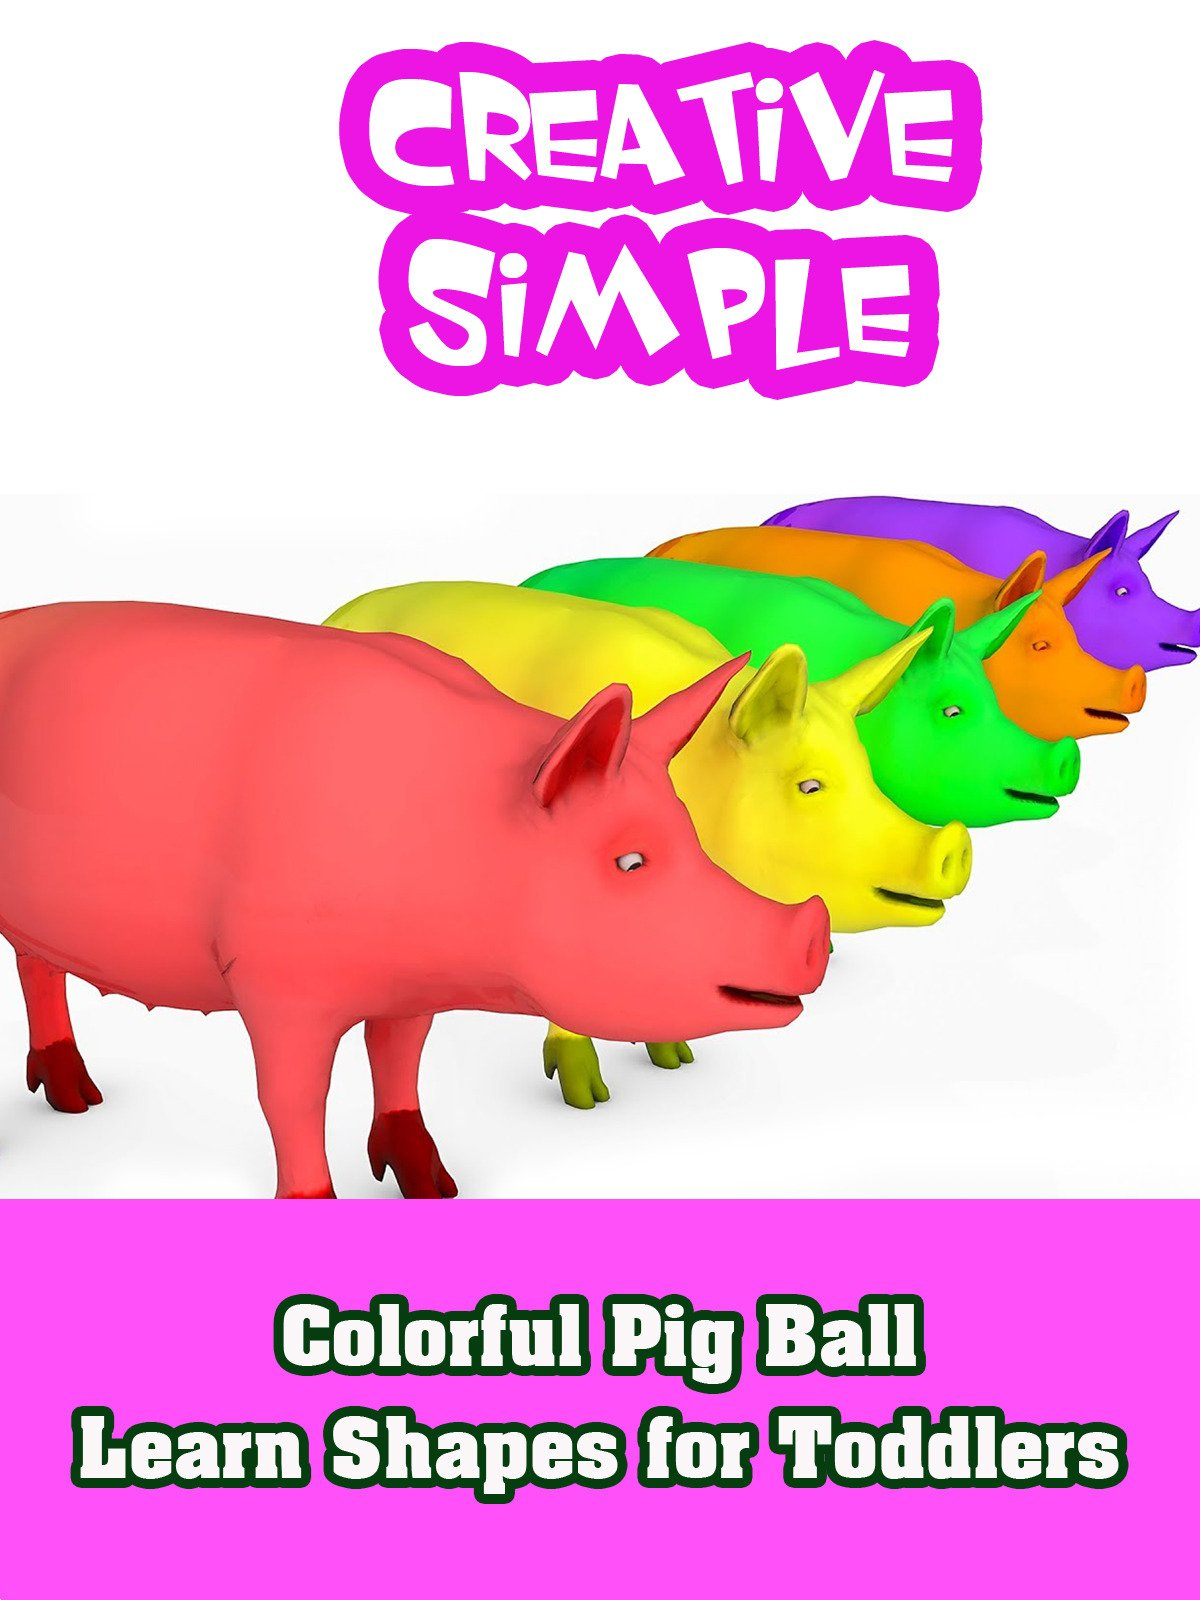 Colorful Pig Ball Learn Shapes for Toddlers